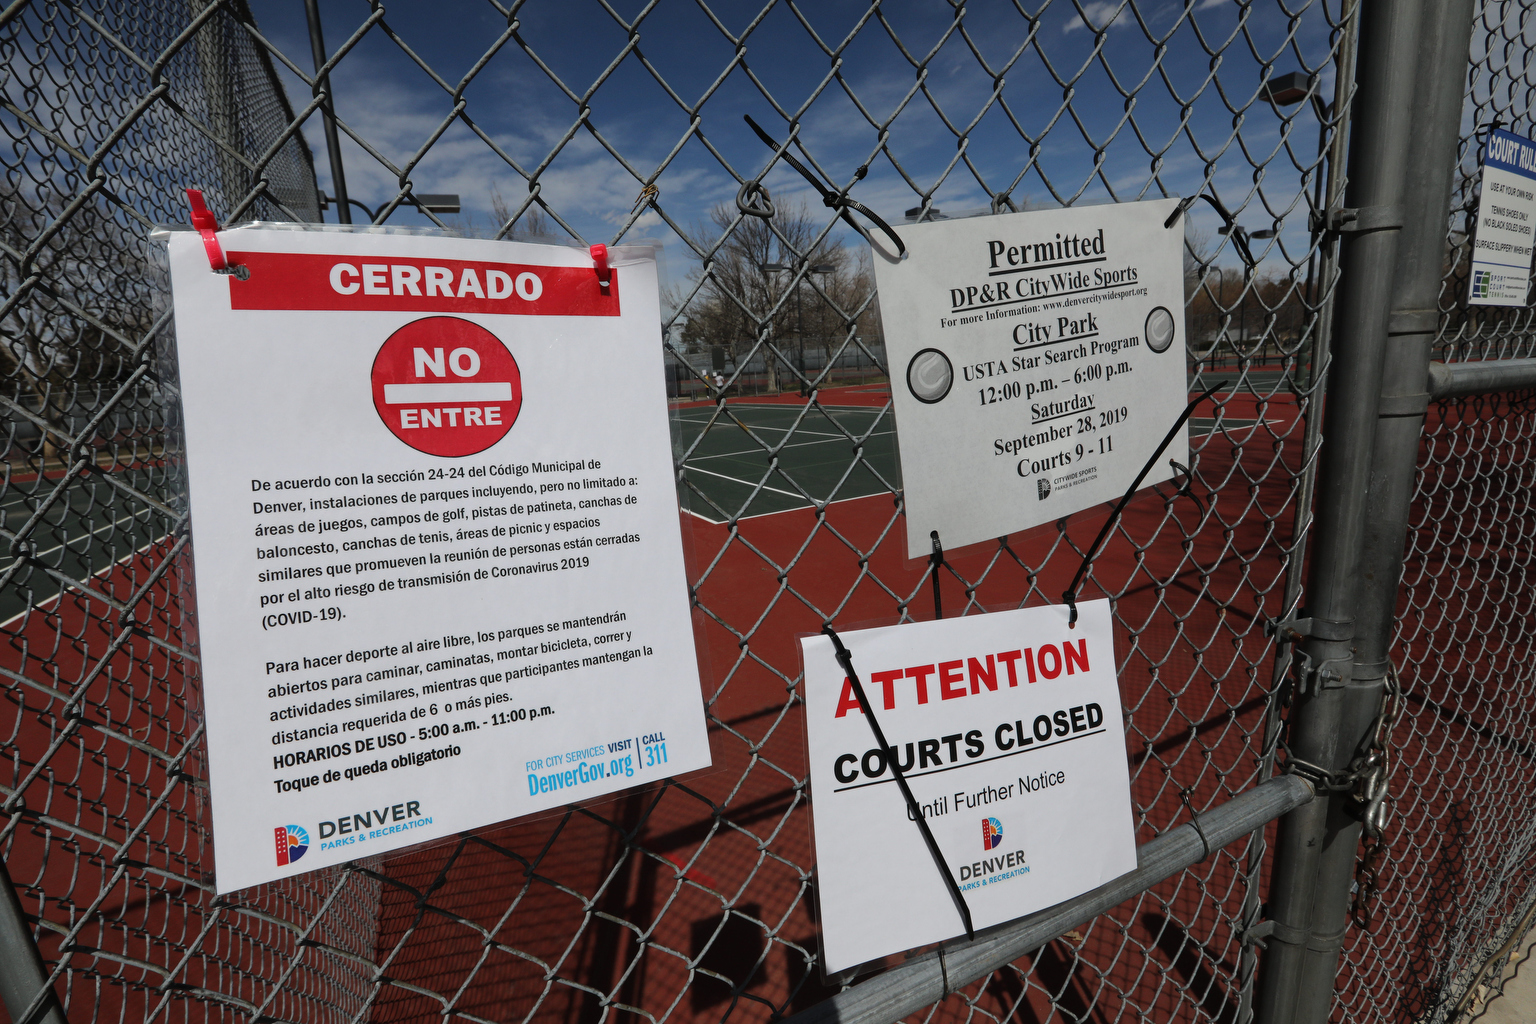 Coronavirus Denver Tennis Courts Closed